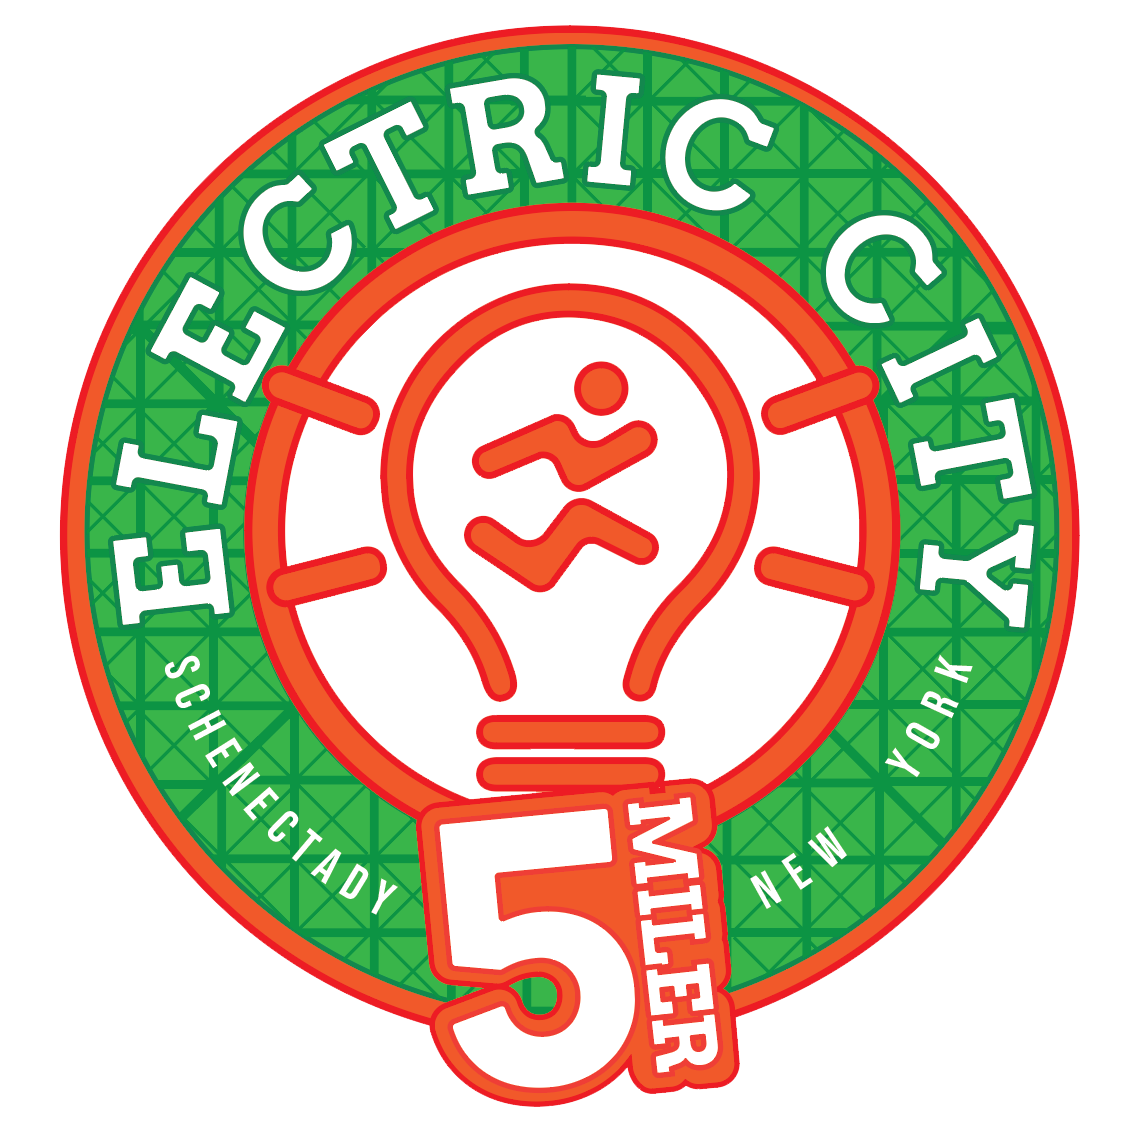 Image result for electric city 5 miler